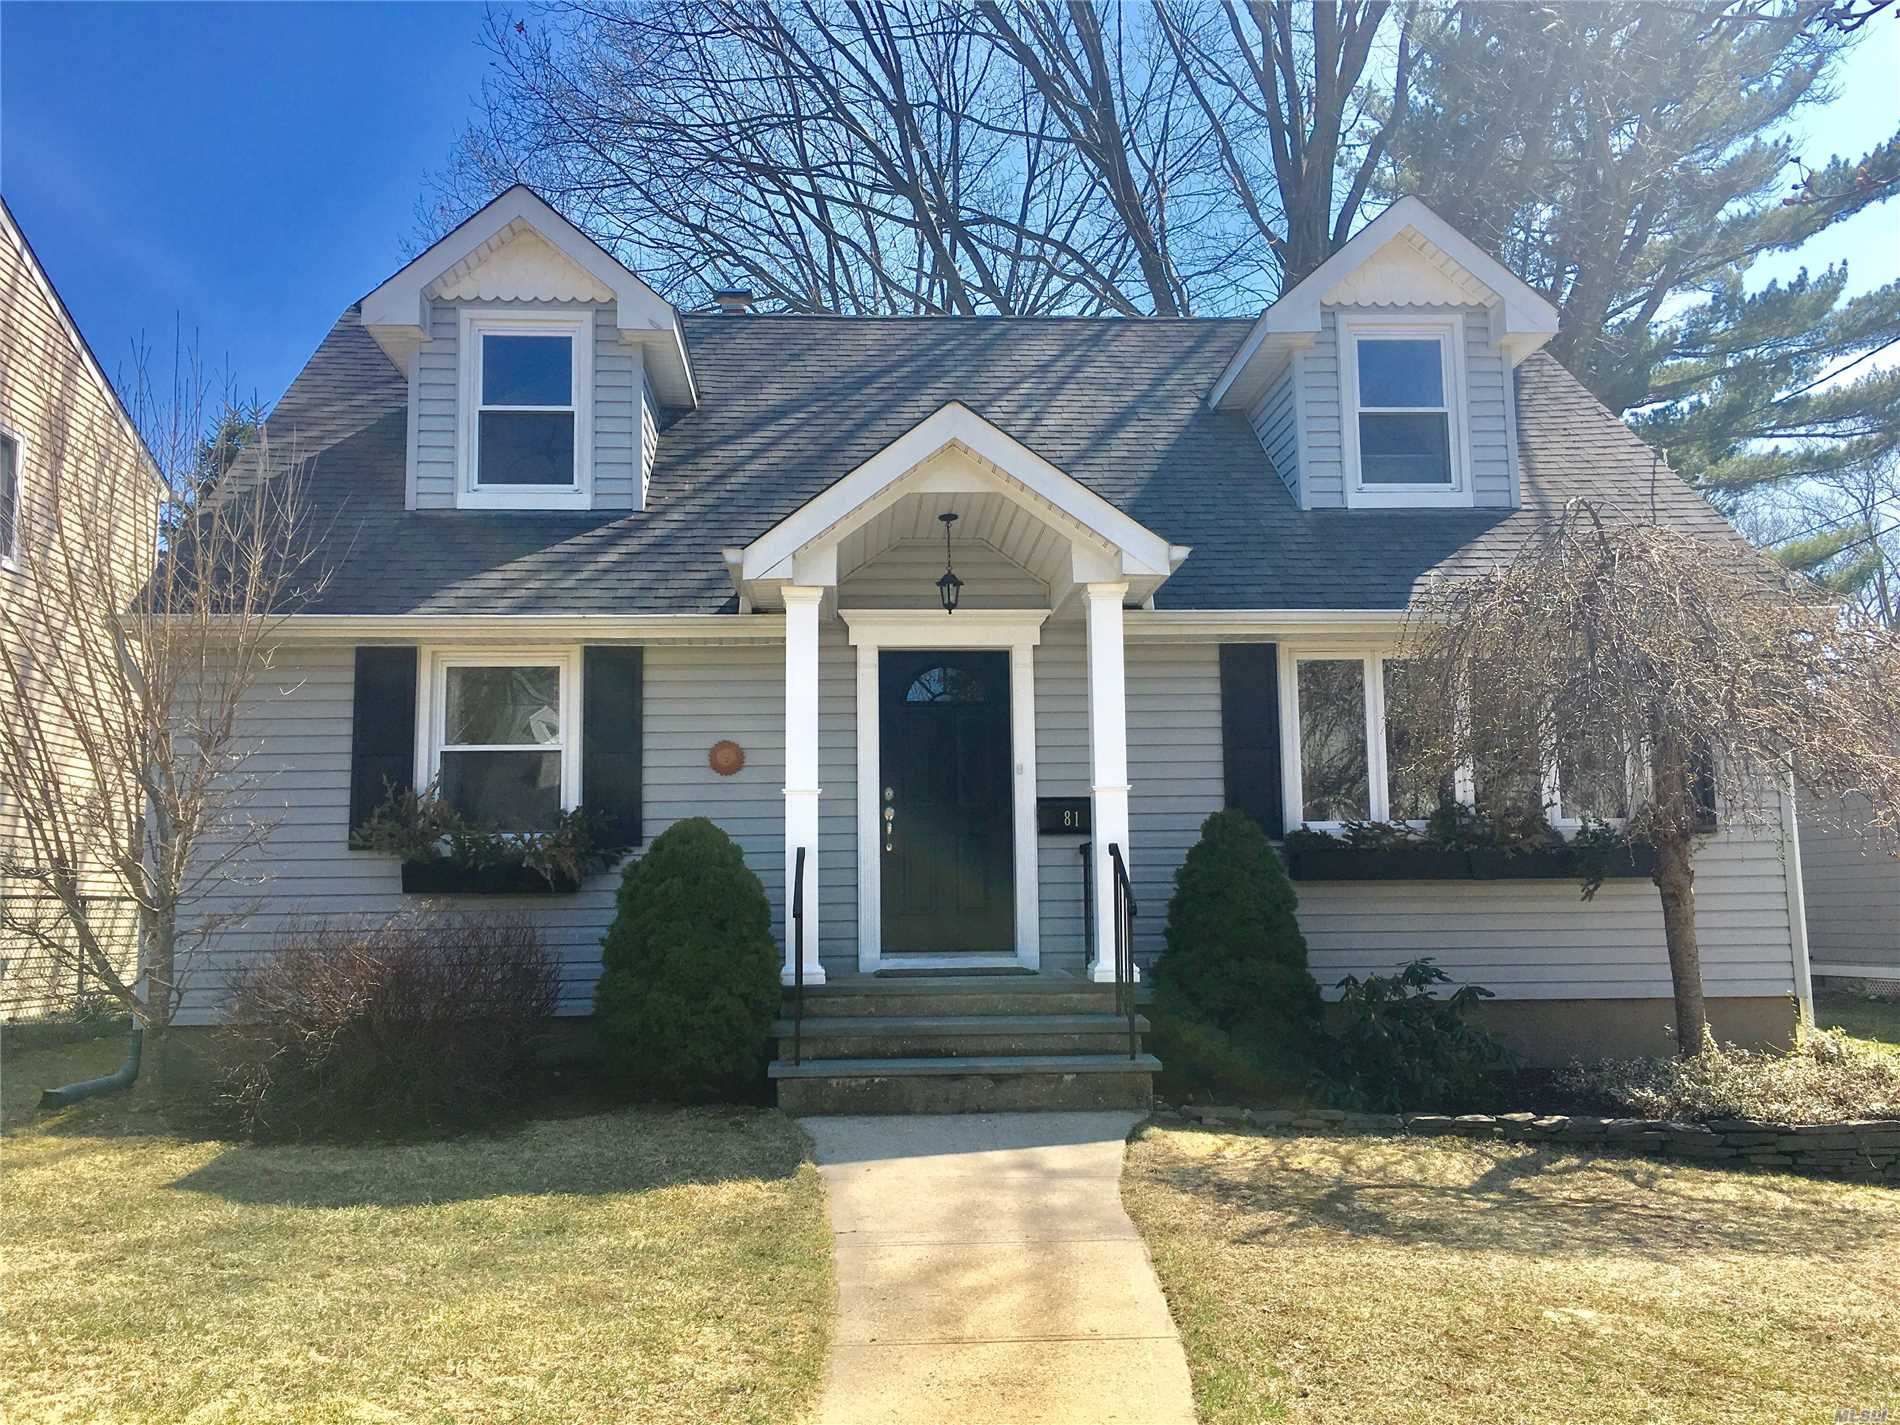 **Must see** Herricks school district. Newly renovated inside & outside, move in ready. Updated Kitchen With Stainless Steel Appliances. Open Porch With Nice Backyard. Hardwood floors, 5 BR with 2.5 bath, fully finished basement. Walking distance to Searingtown Elementary & Herricks Middle School.